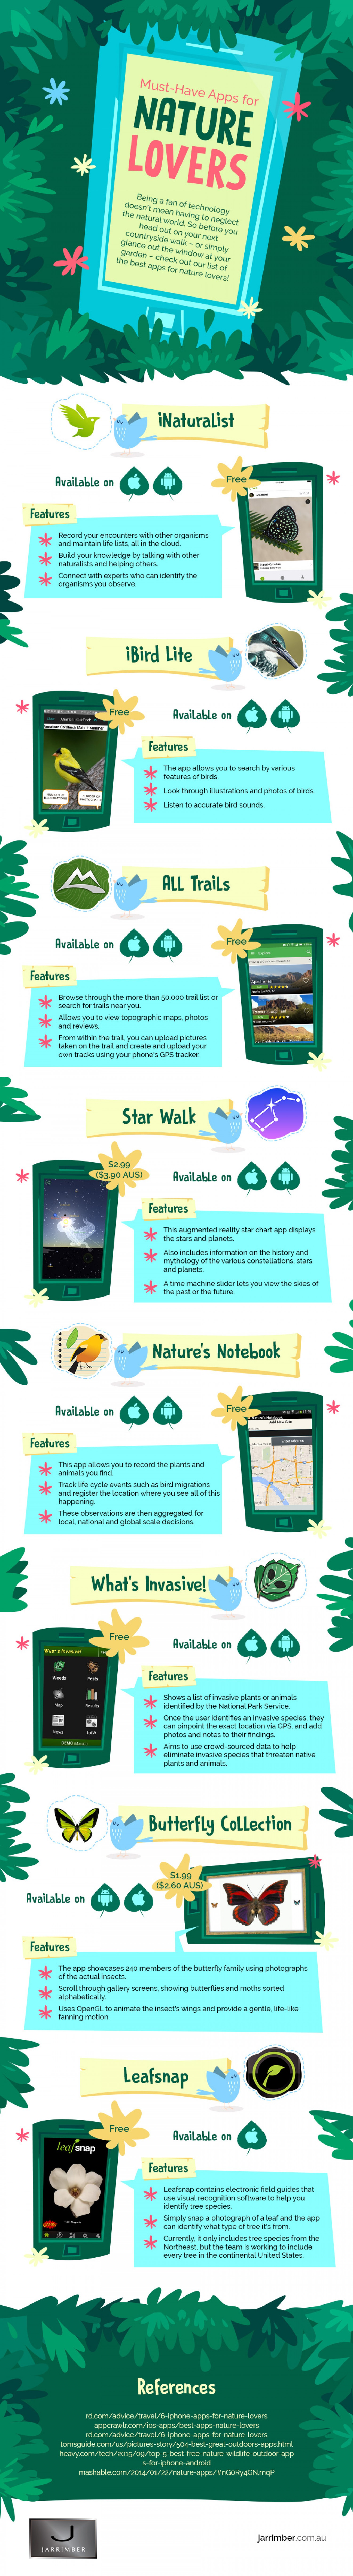 Jarrimber_must-have-apps-for-nature-lovers-Infographic (1).jpg